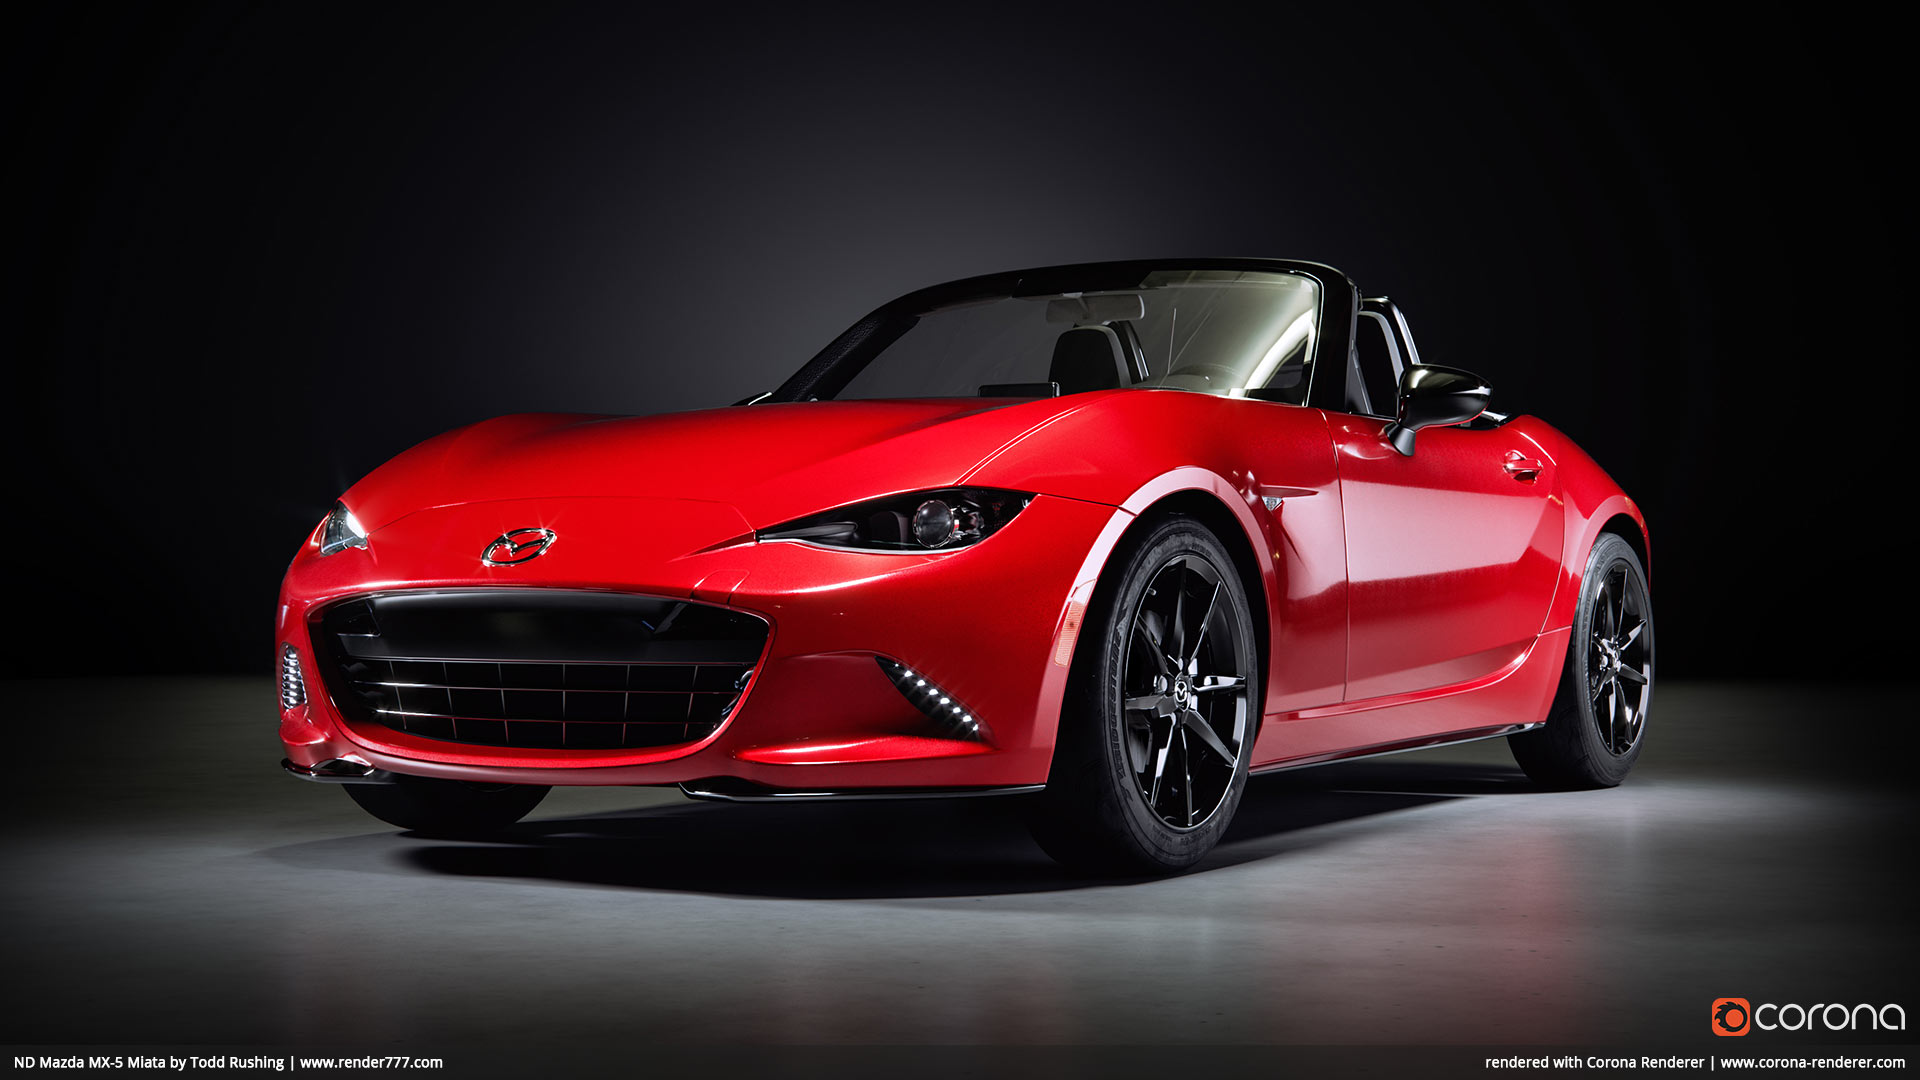 ND Mazda MX-5 Miata by Todd Rushing